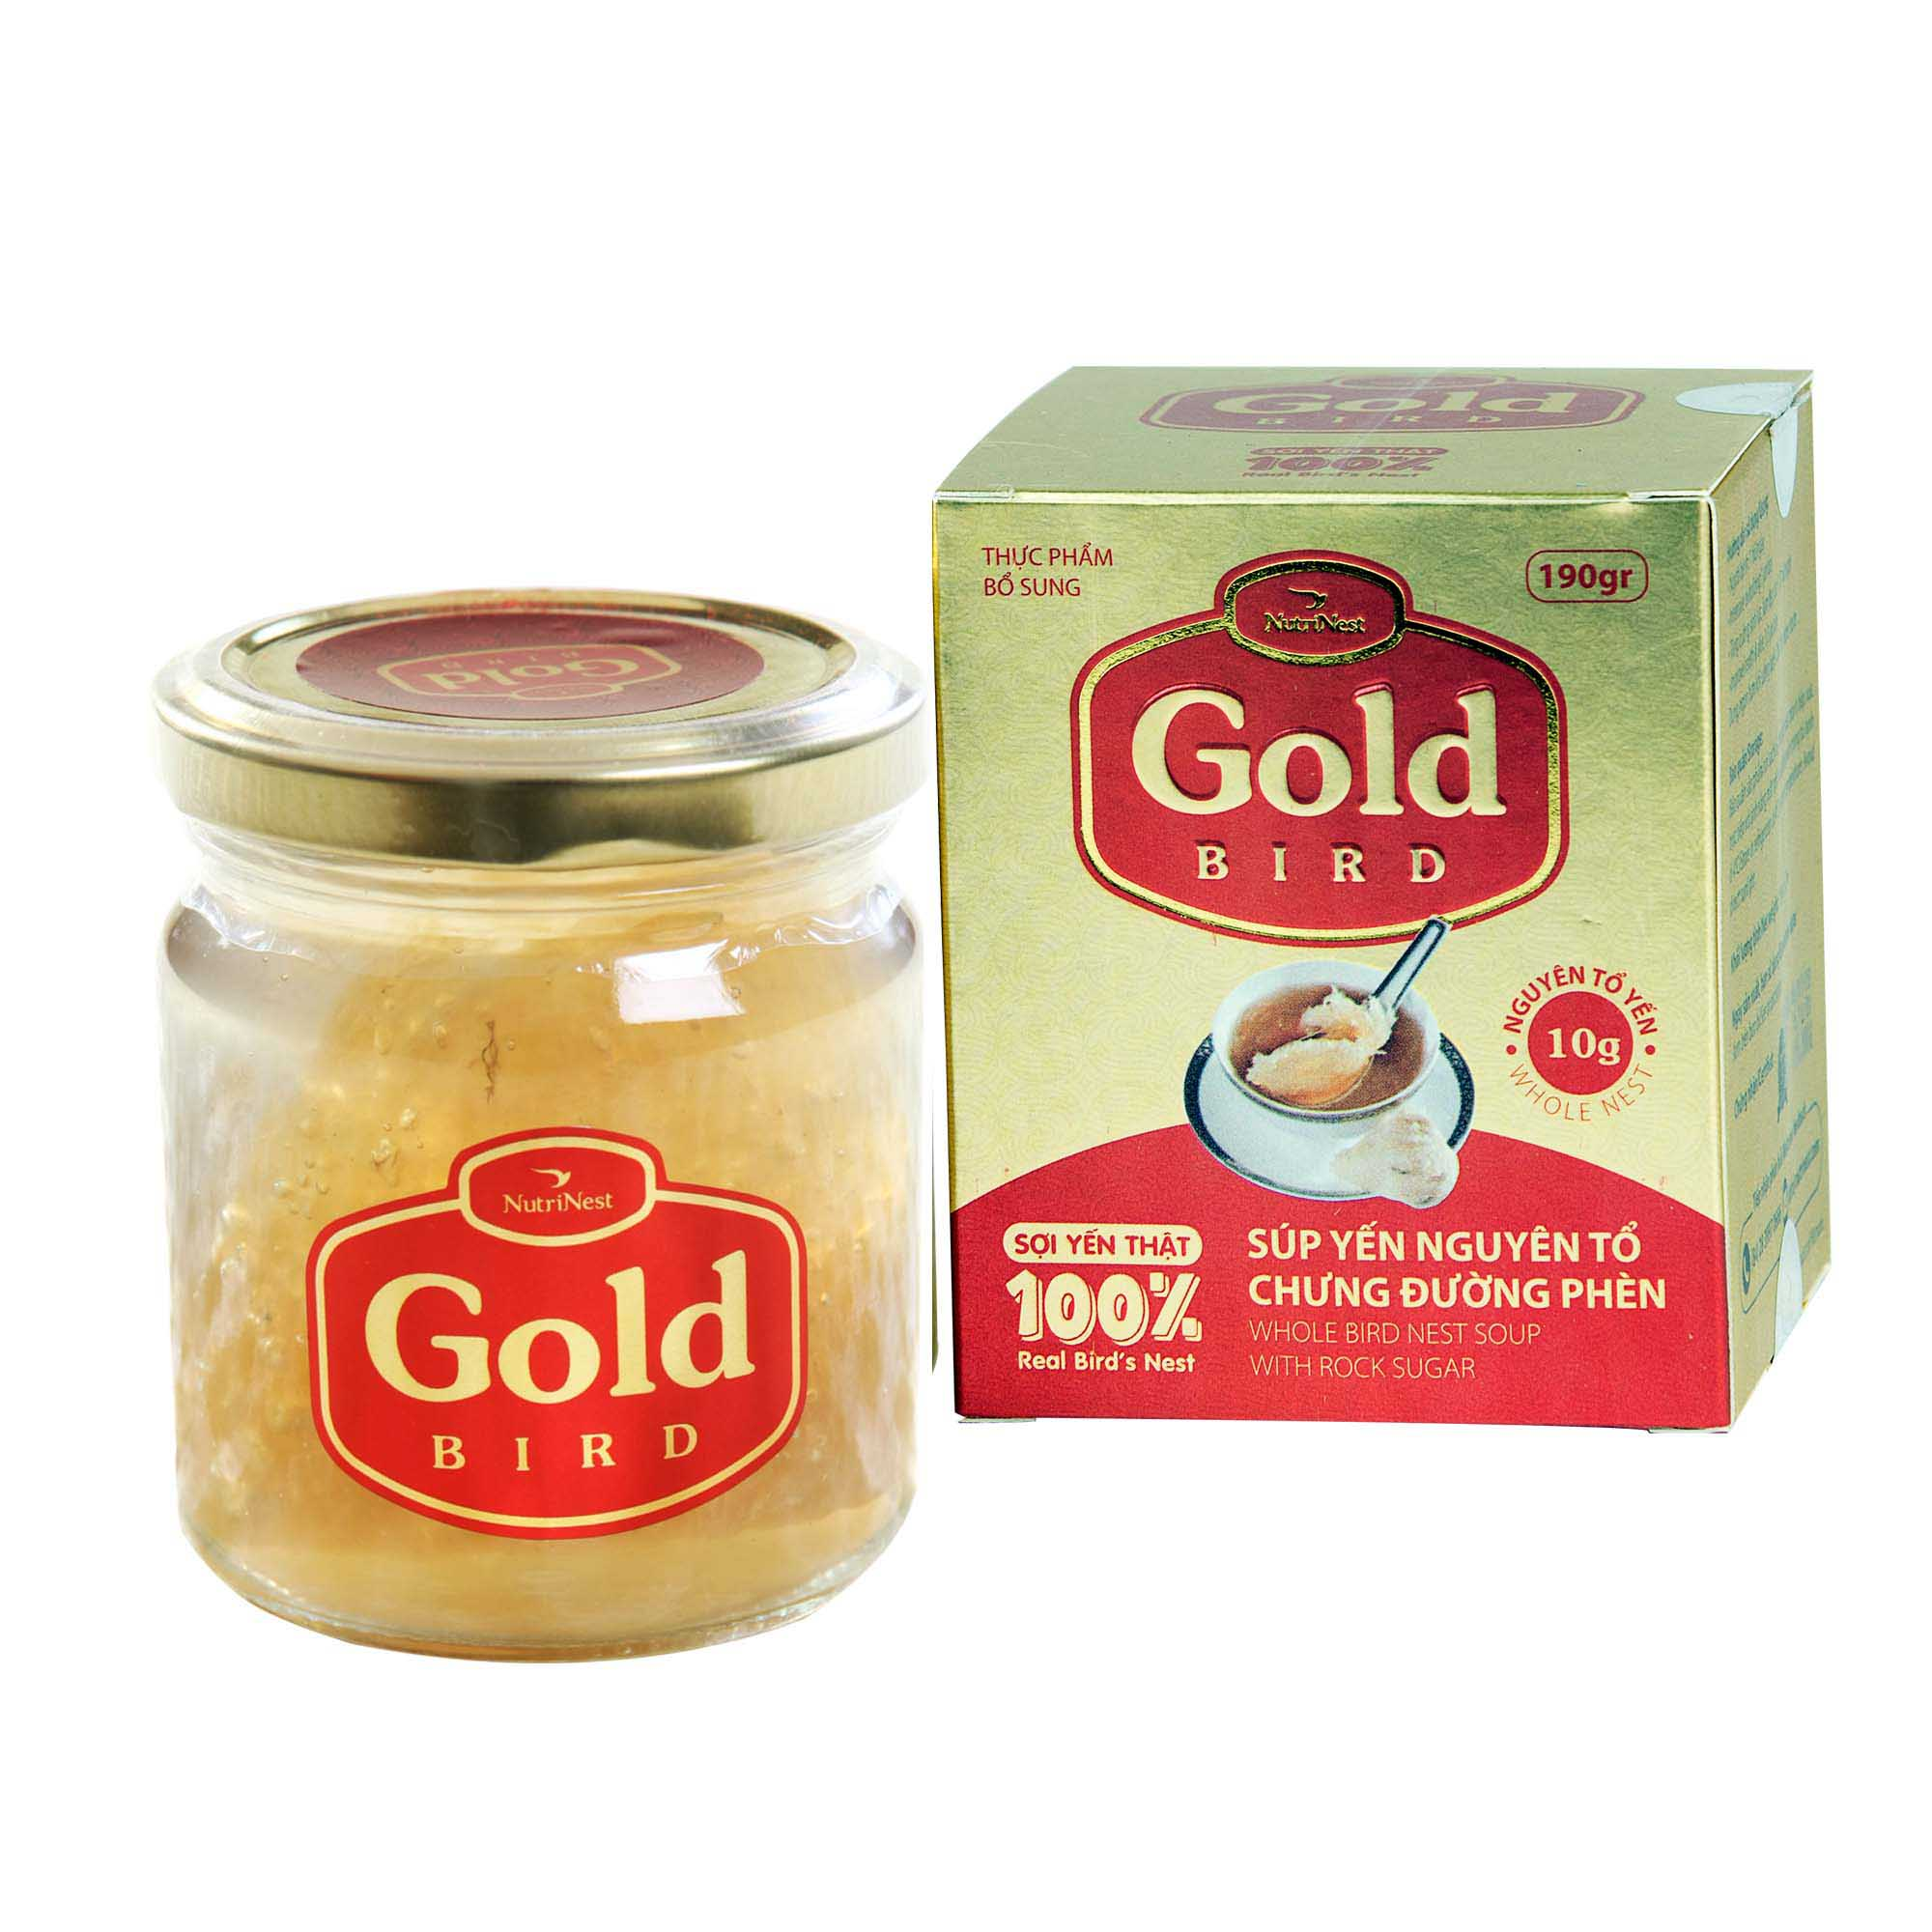 Gold Bird  - Whole bird's nest with rock sugar – Jar 190gr